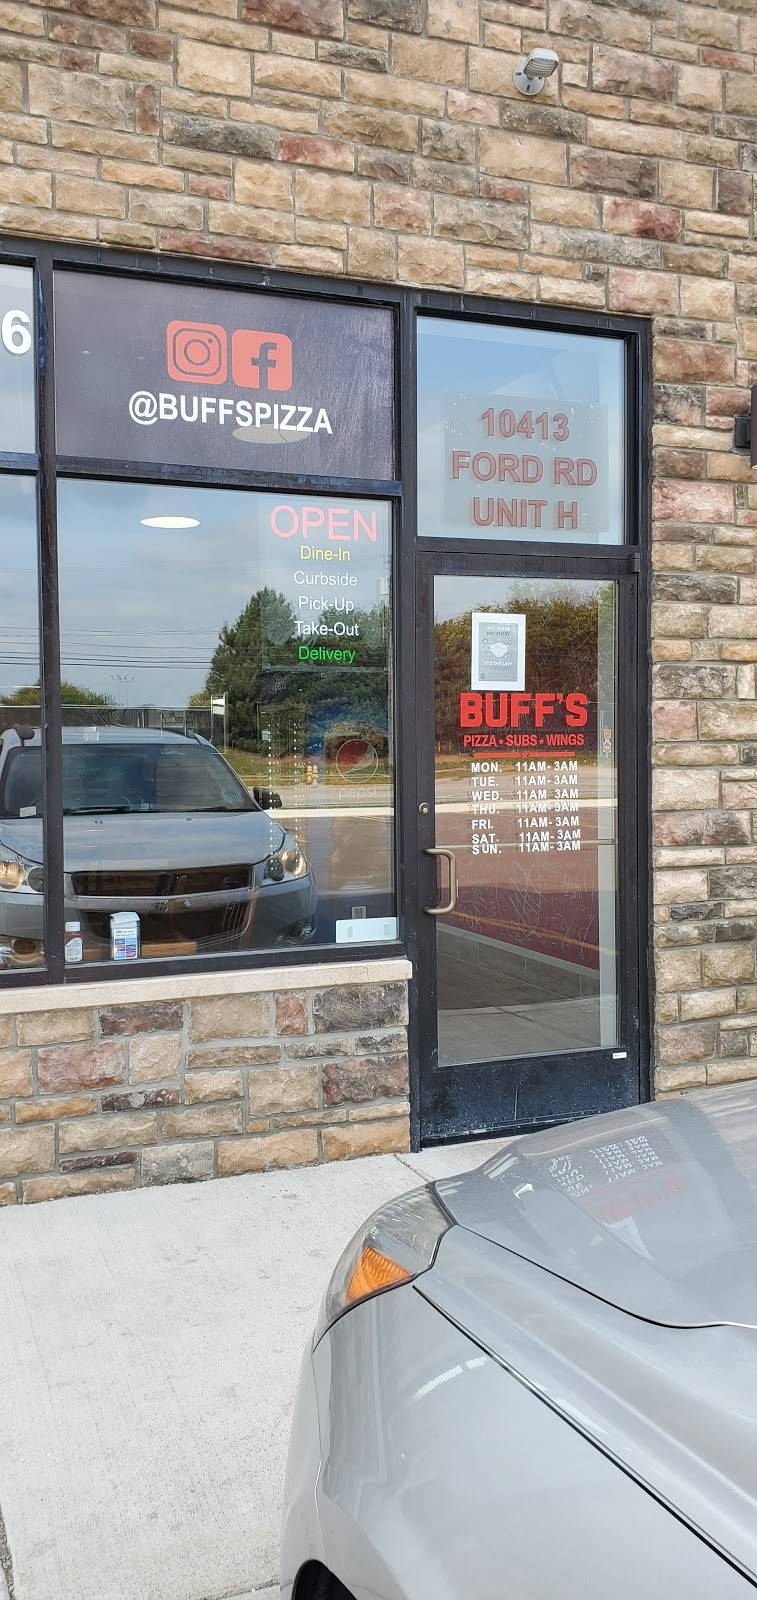 Buffs Pizza | restaurant | 10413 Ford Rd Unit H, Dearborn, MI 48126, USA | 3133319006 OR +1 313-331-9006